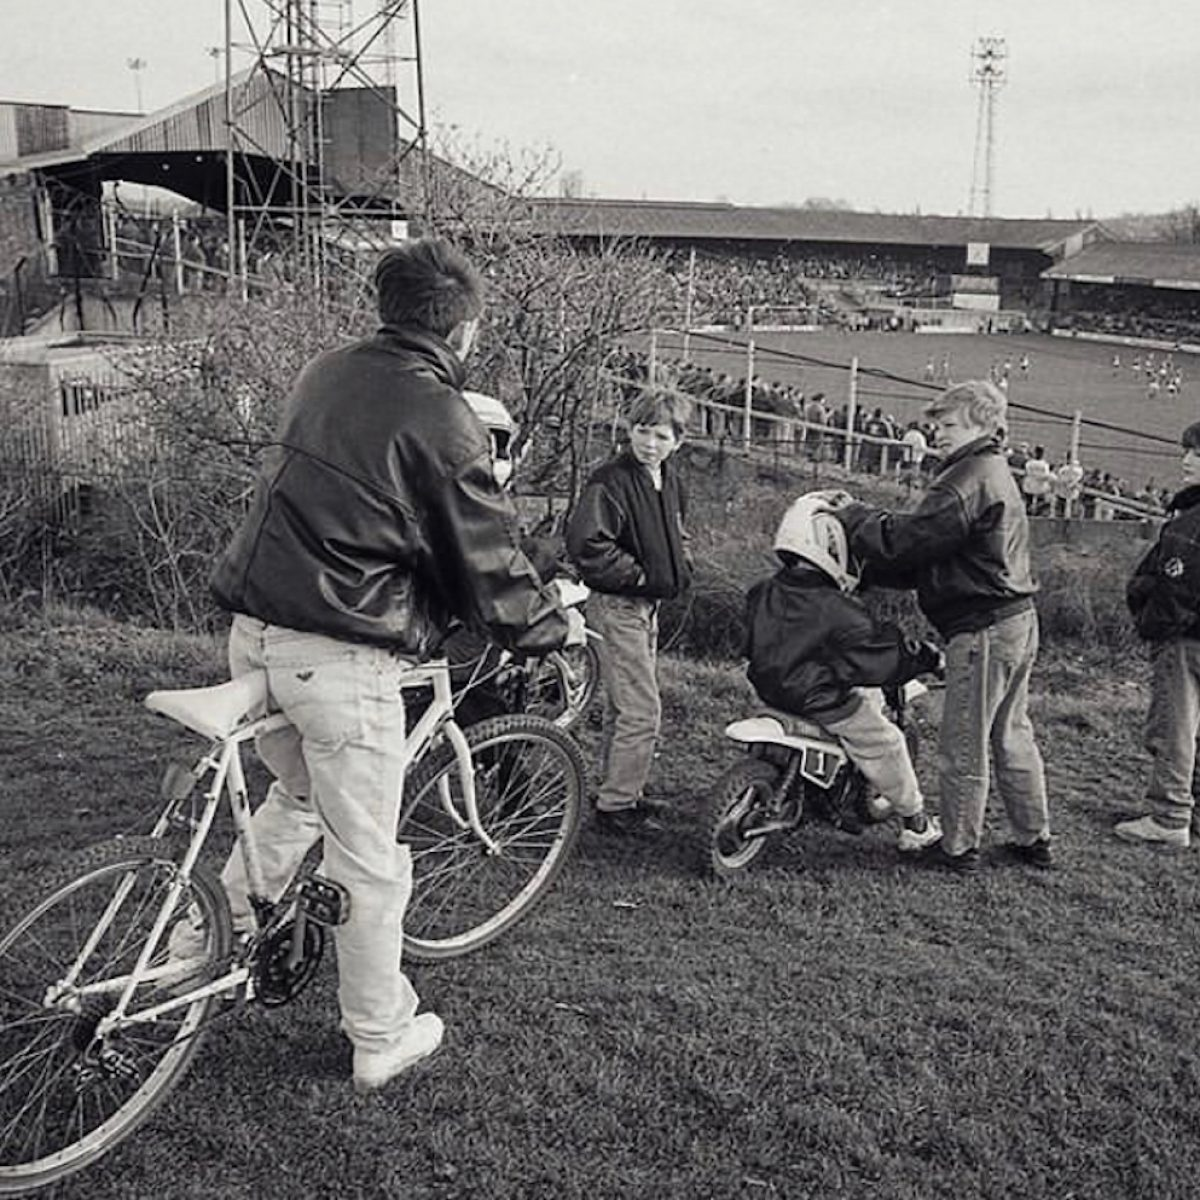 Overlooking the Old Den, Millwall, 1993.